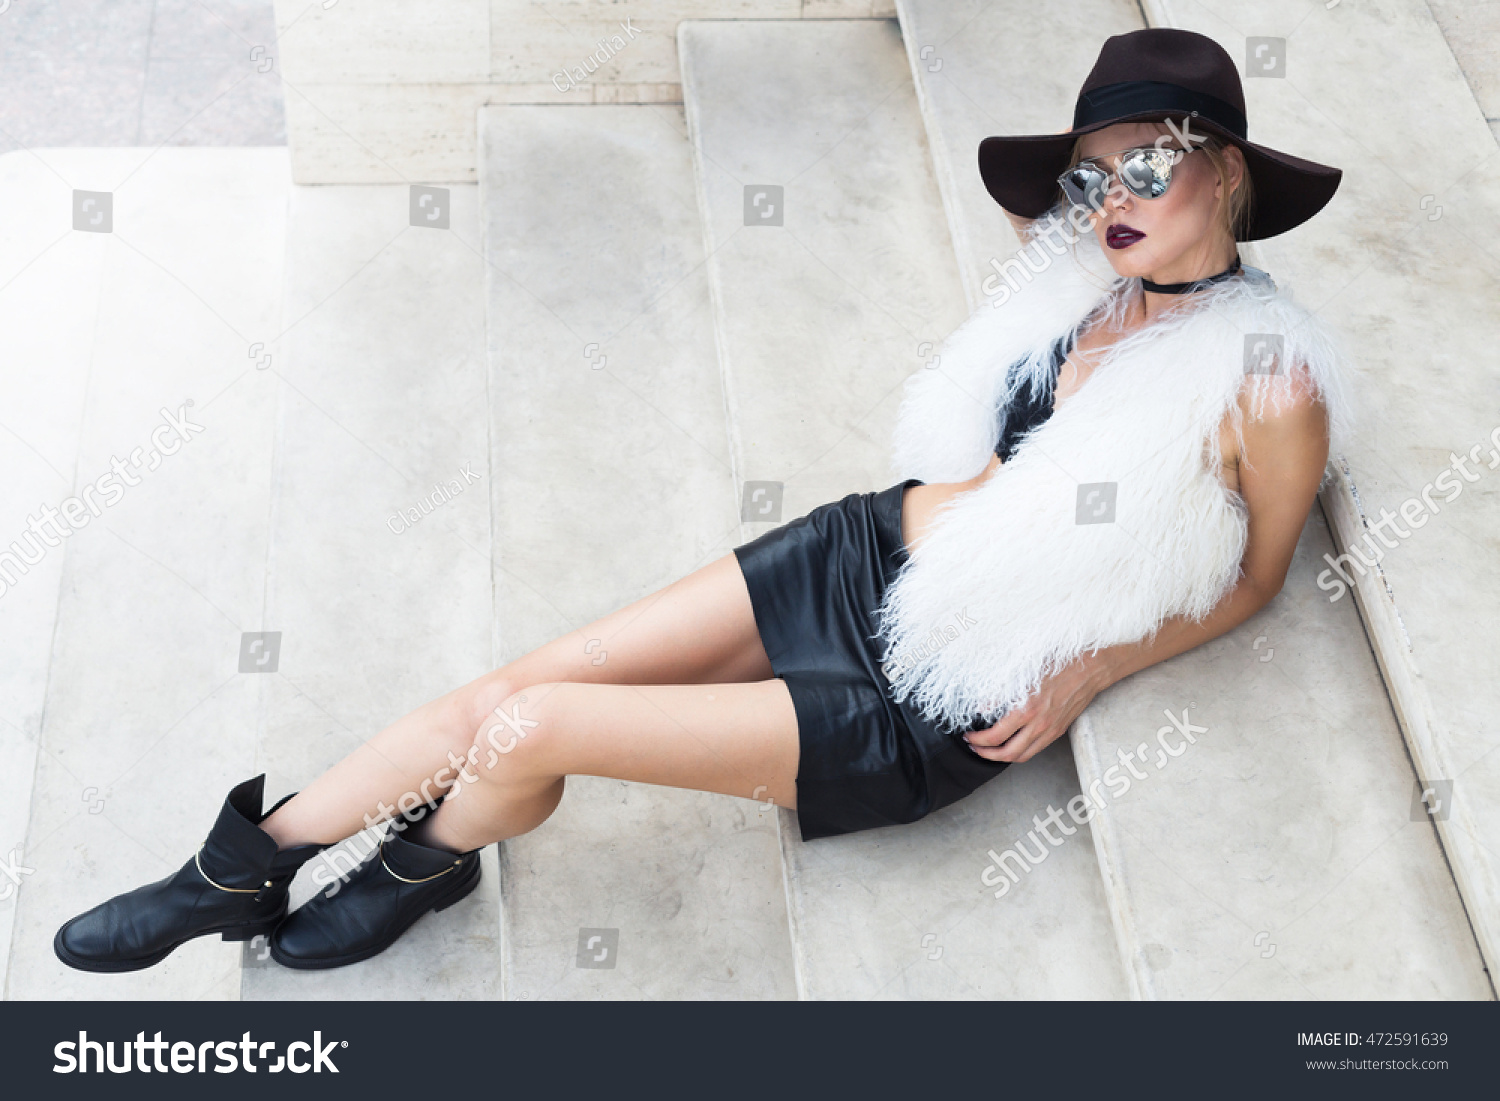 Excellent Beautiful Natural Young Woman In Boots Sitting Cross Legged U2014 Stock Photo U00a9 Salomephoto #29317125